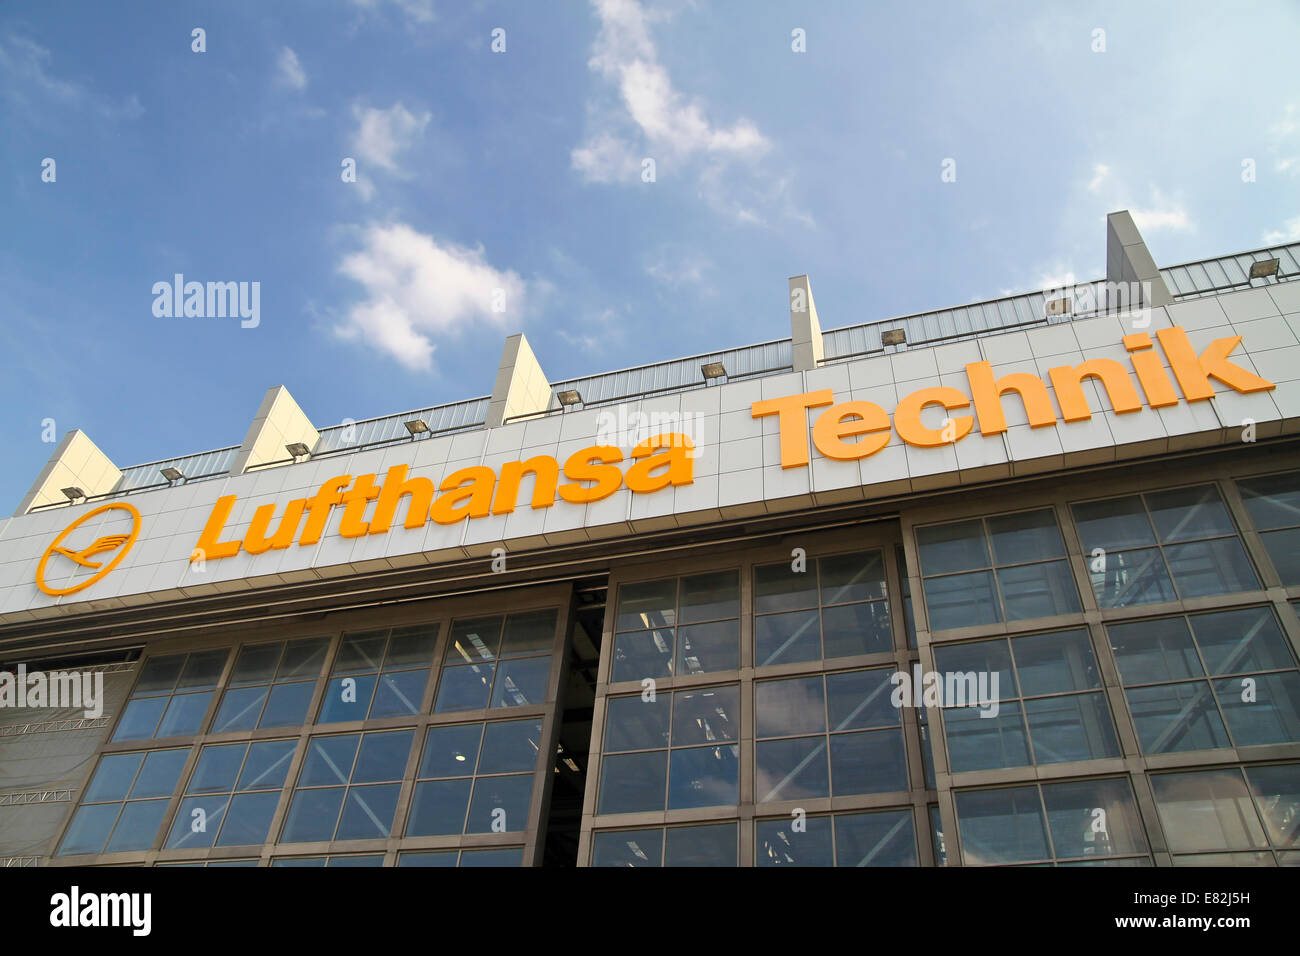 Germany, Hamburg, Lufthansa Technik Hangar at Hamburg Airport - Stock Image